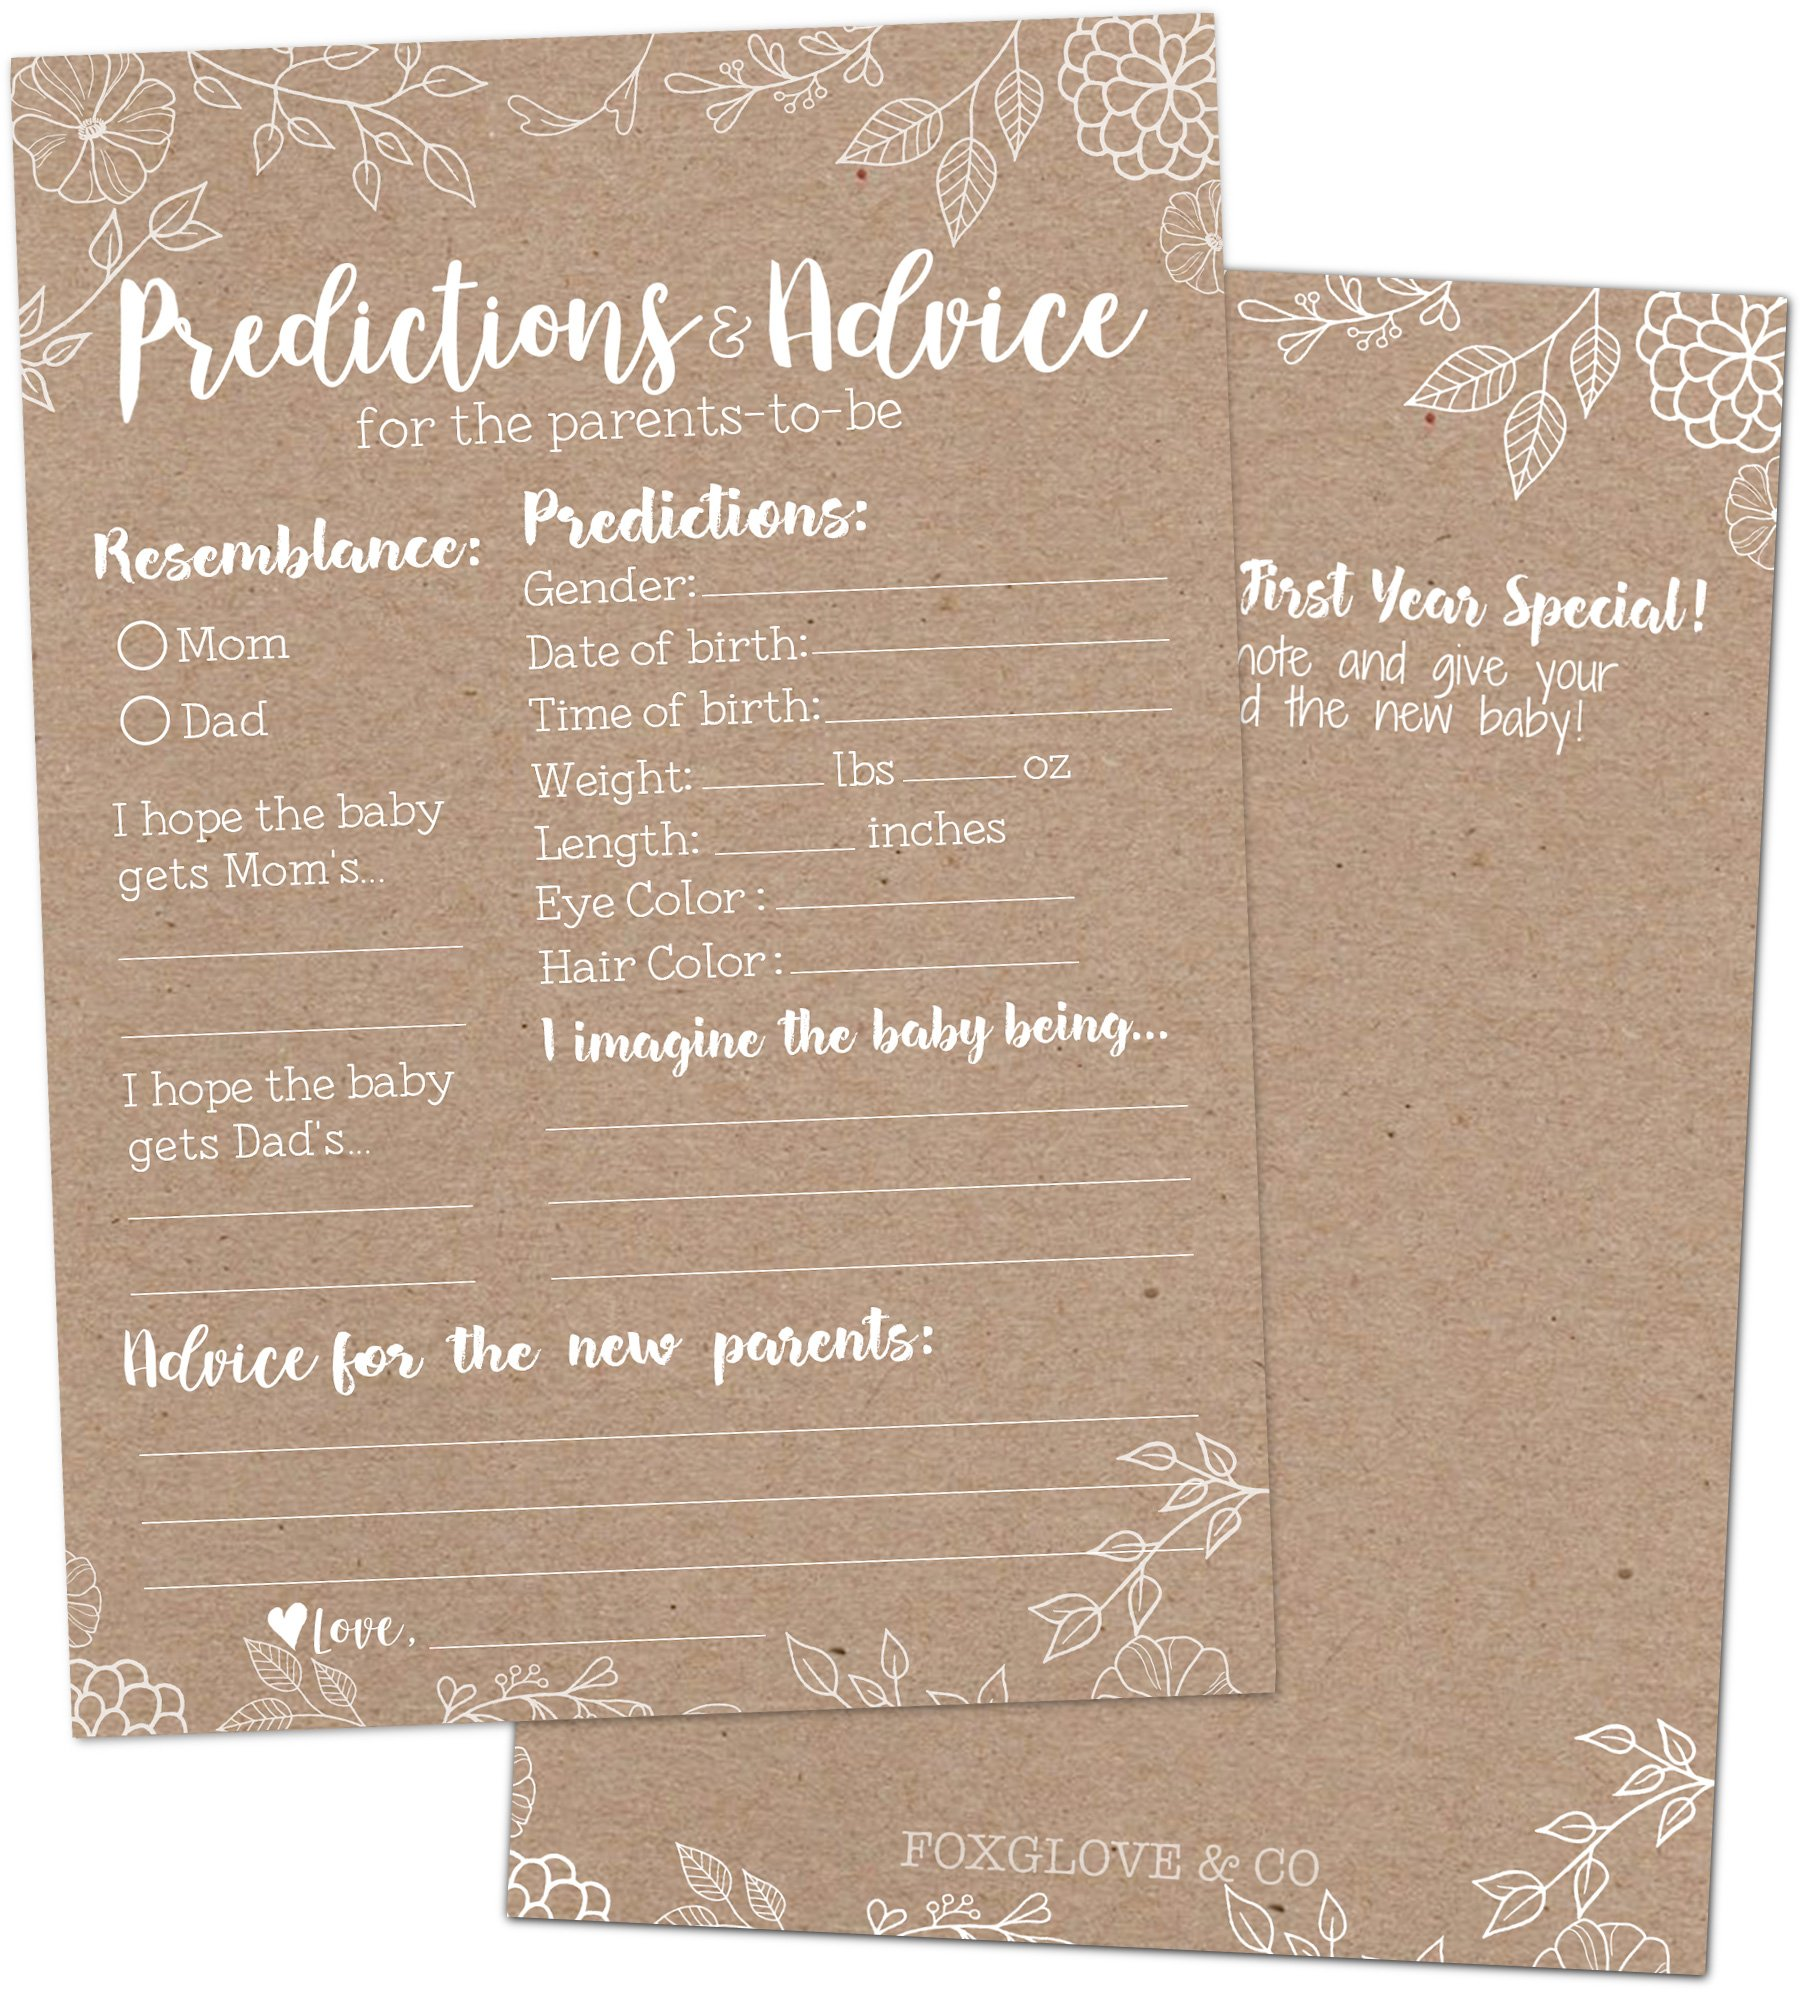 50 Rustic Baby Shower Prediction and Advice Cards - Baby Shower Games for Gender Neutral, Girls or Boys Party - Advice Cards for Baby Shower, Best Wishes for New Parents, Mom & Dad, Mommy & Daddy